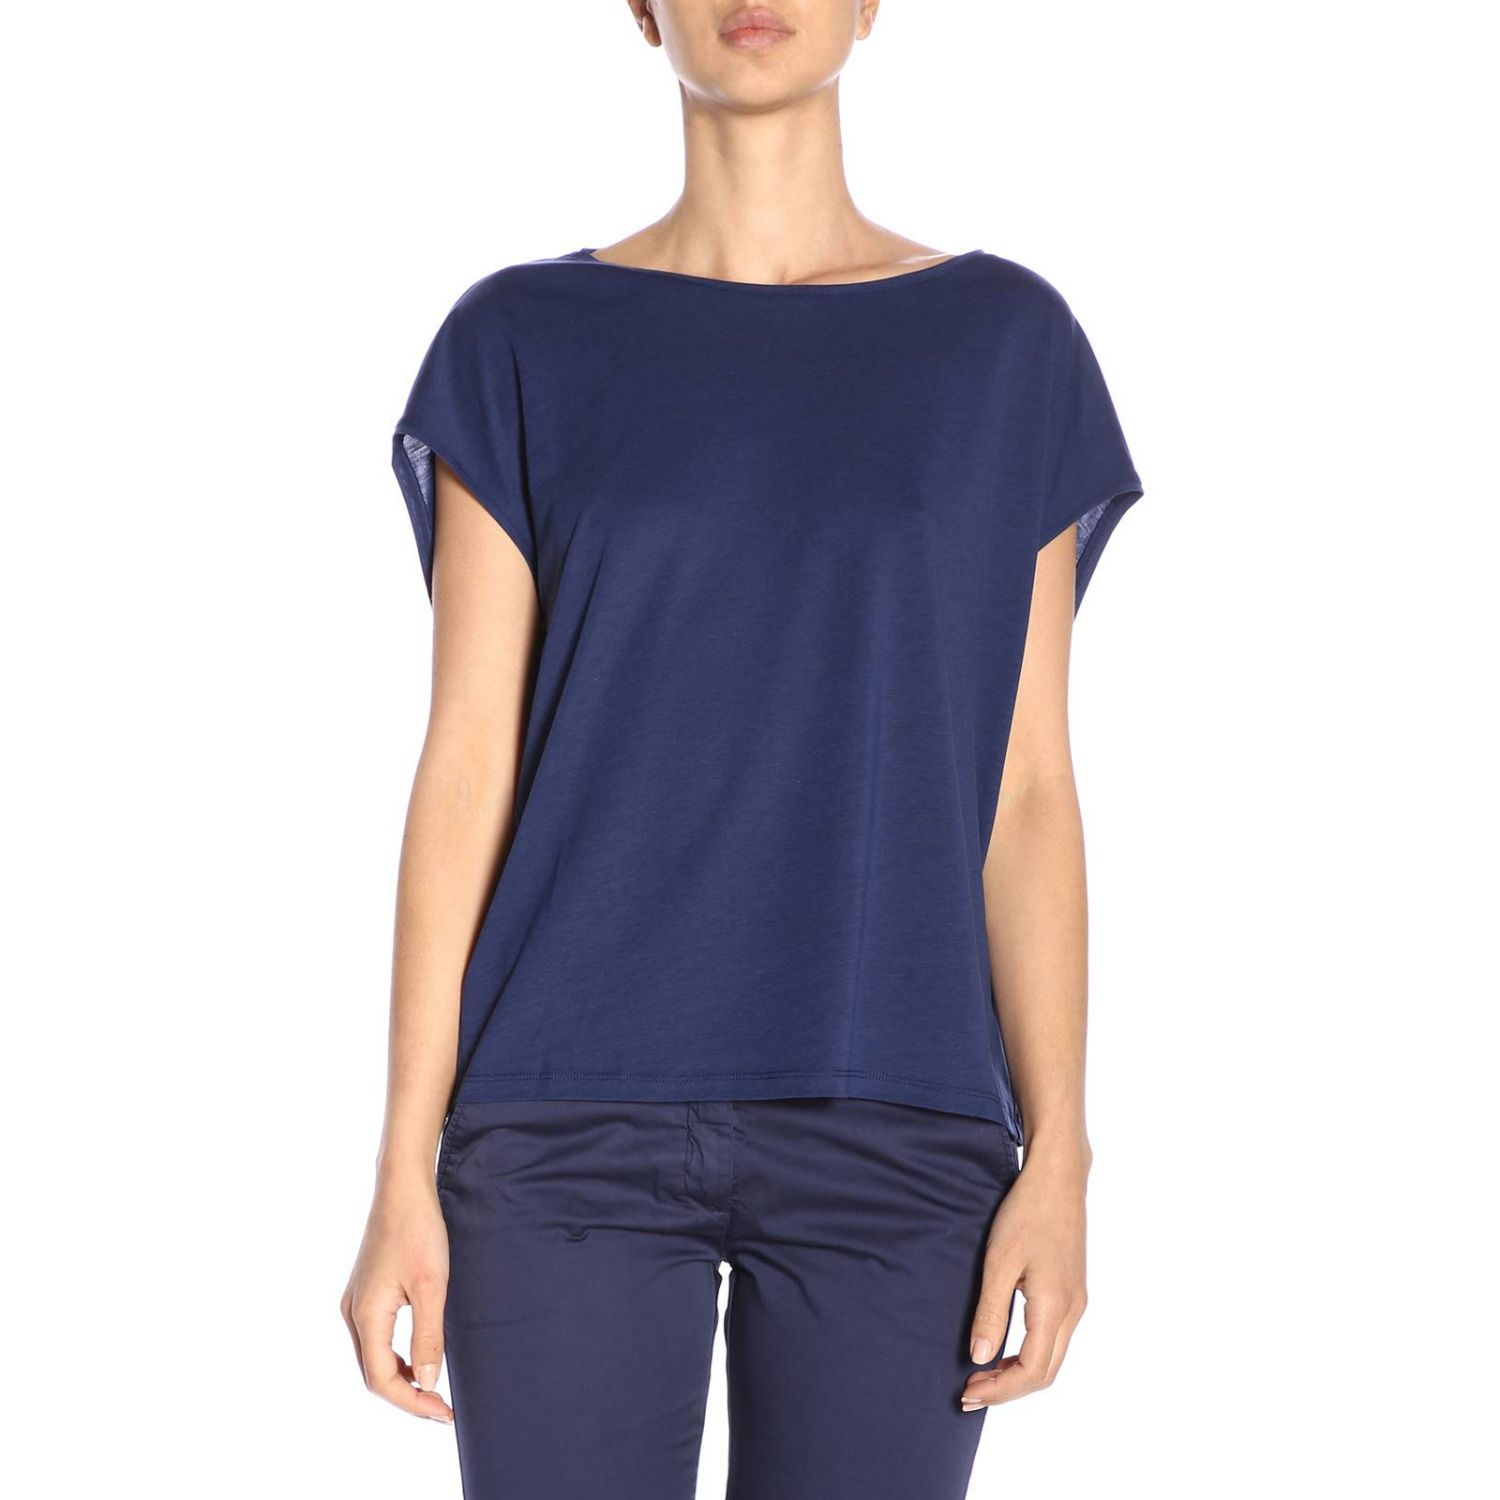 Camiseta mujer Woolrich azul oscuro 1